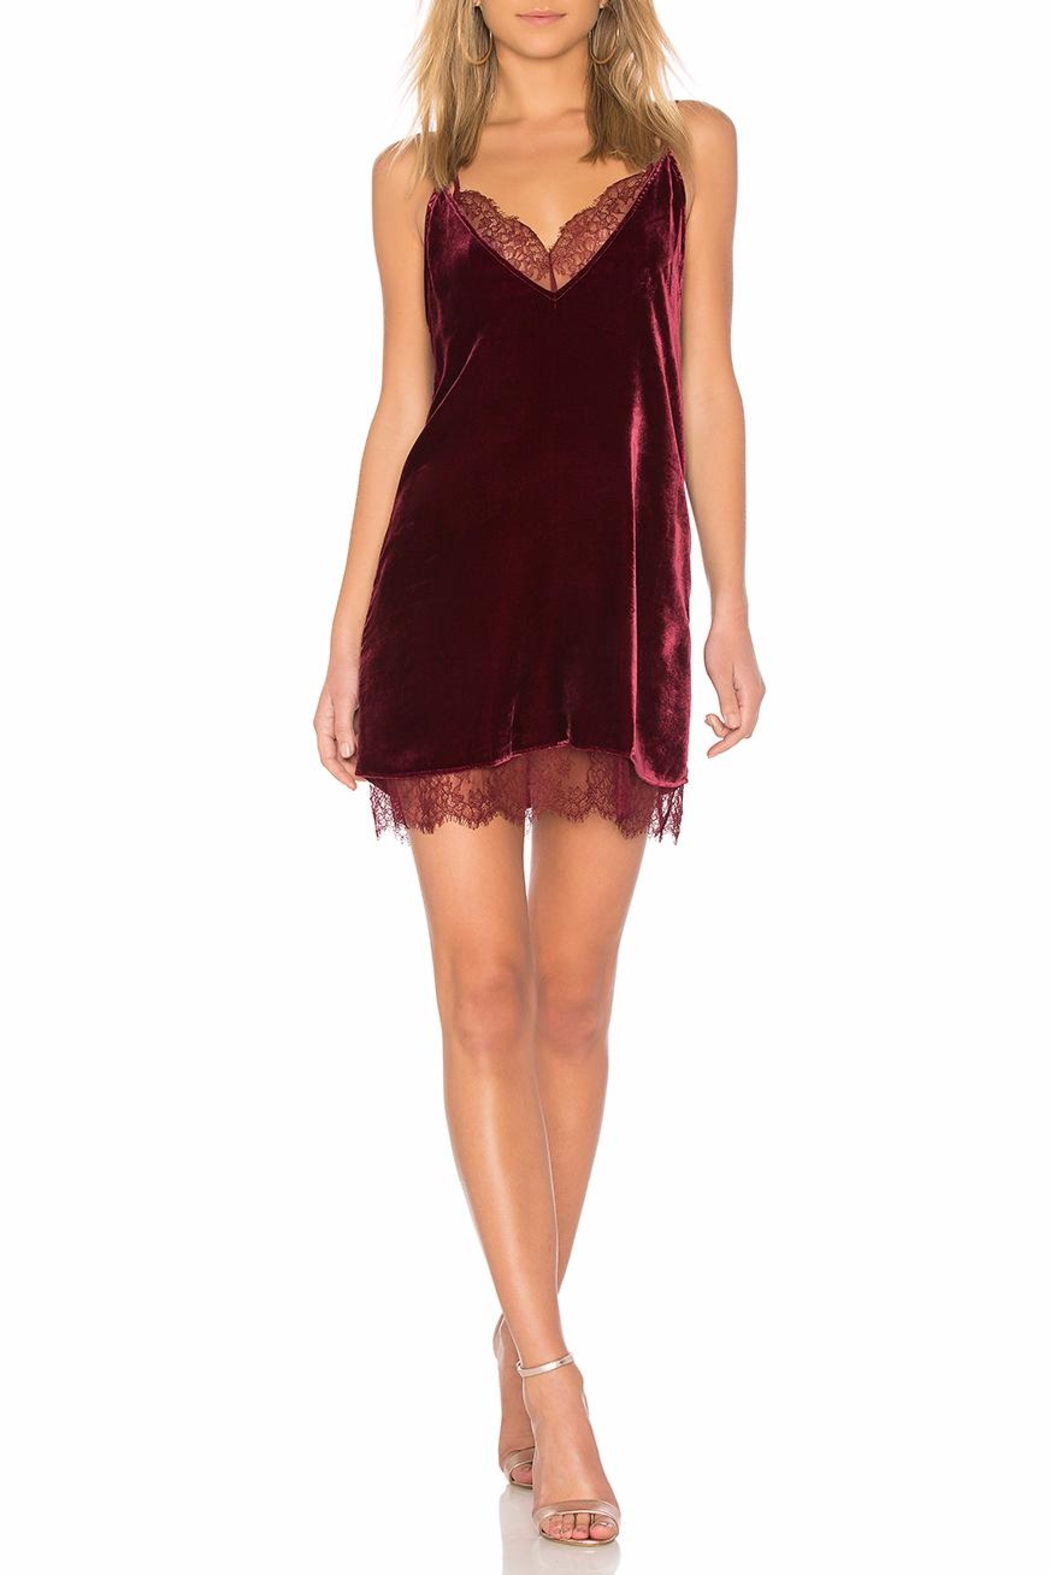 Cami NYC Burgundy Velvet Dress - Main Image